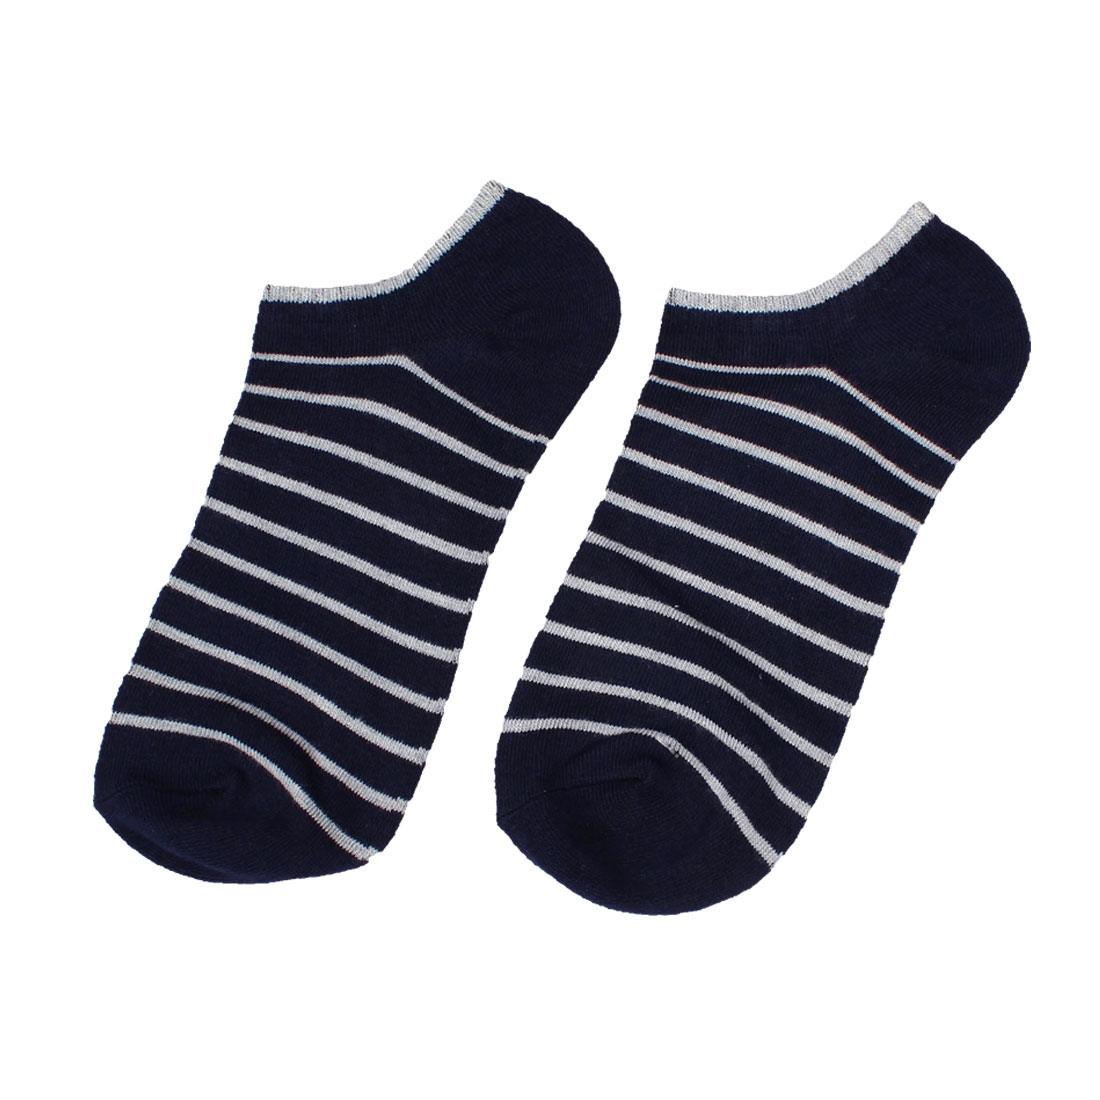 Man Pair Stripes Elastic Low Cut Ankle Summer Sports Socks Dark Blue Gray